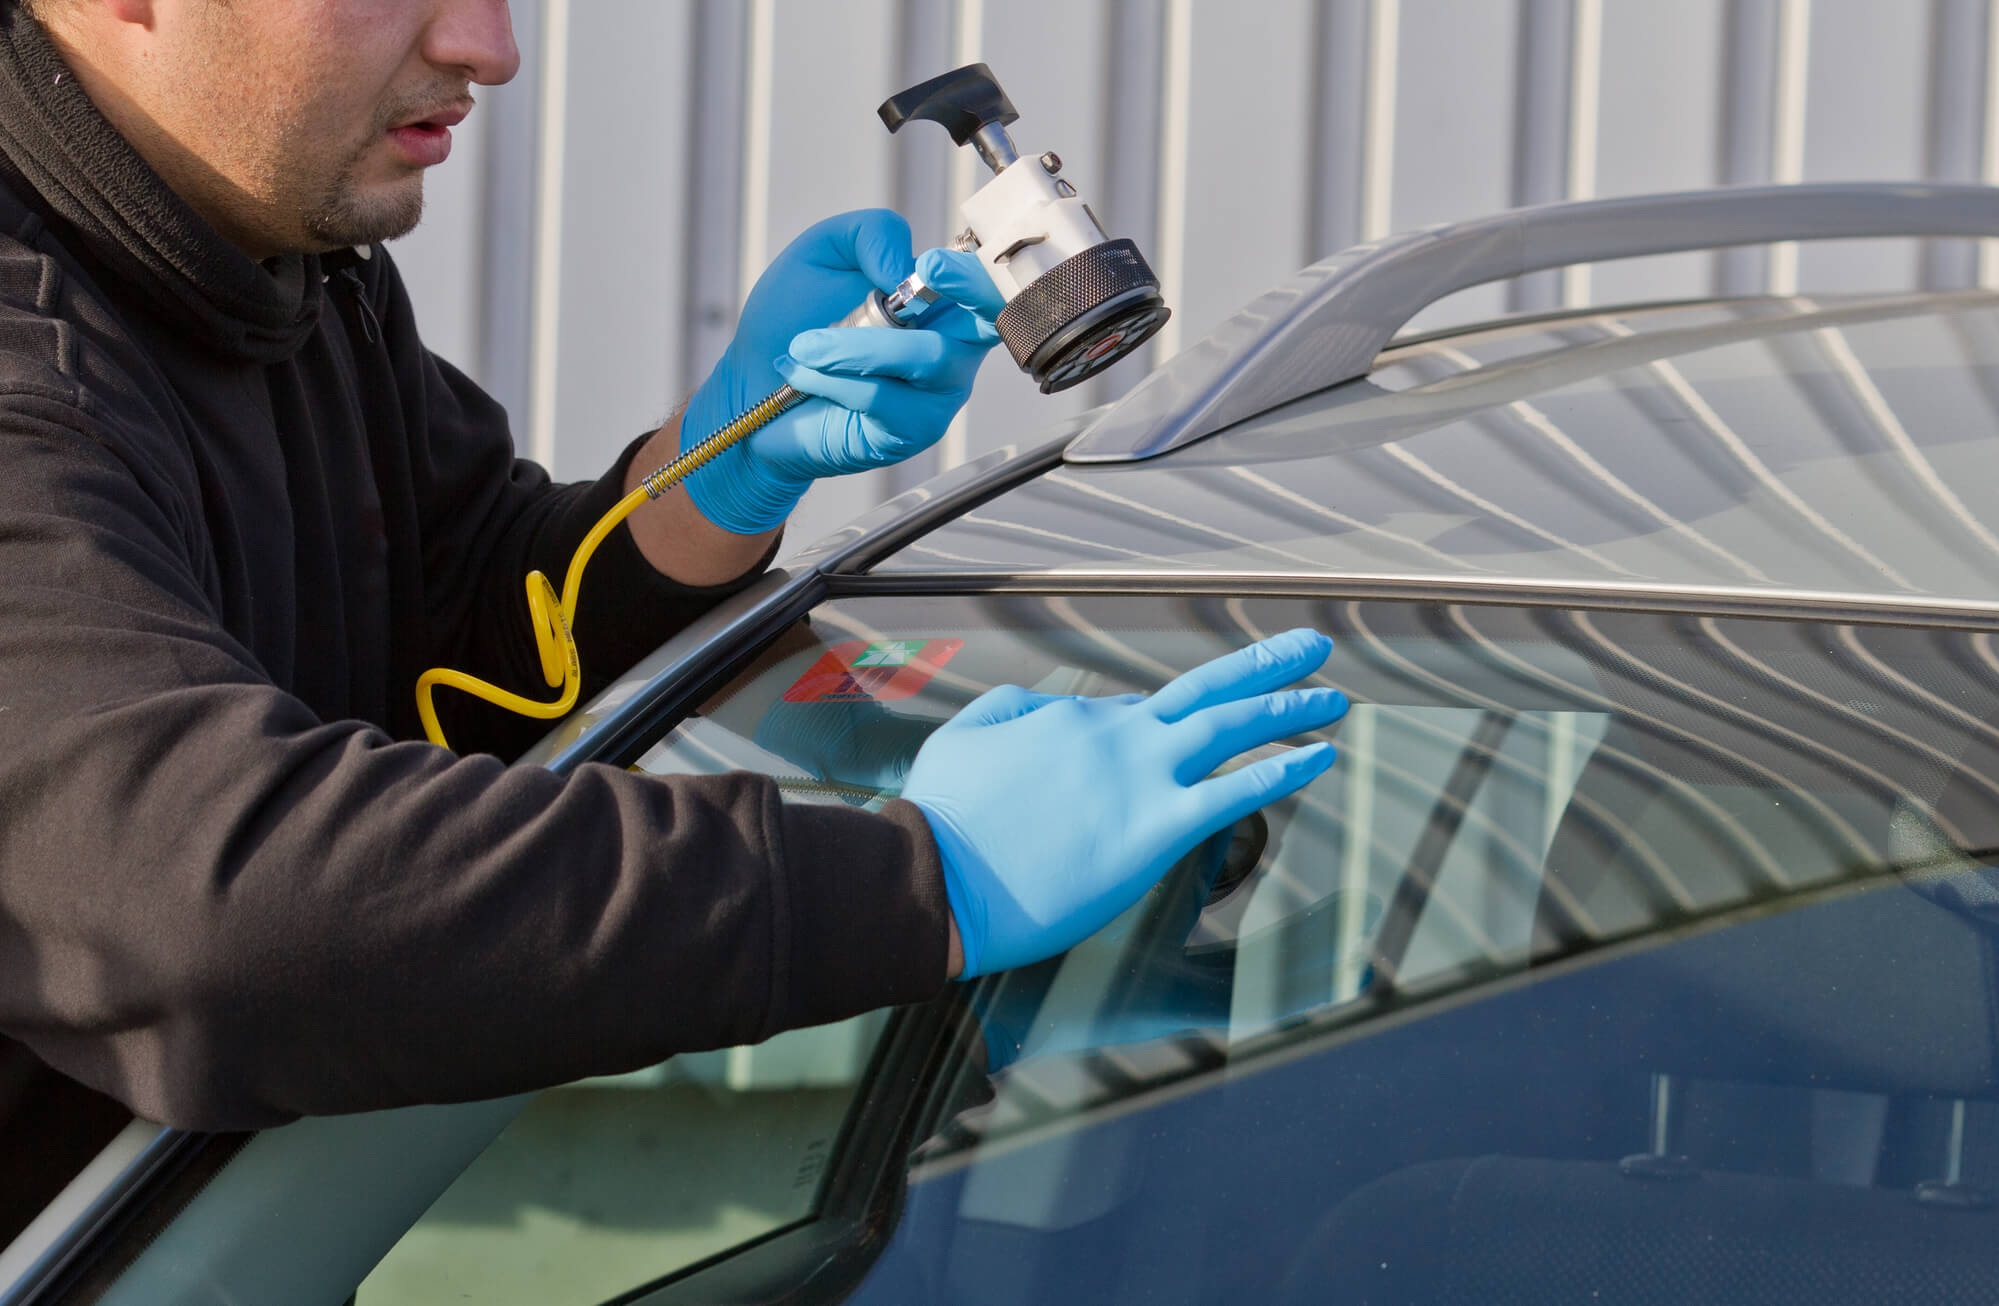 Mobile Services for All - We come to you for all of your auto glass needs. Whether you are at work, home, school, traveling, or attending an event- we'll be there. We will work efficiently to meet your needs and provide you with excellent, durable, and reliable mobile auto glass services.